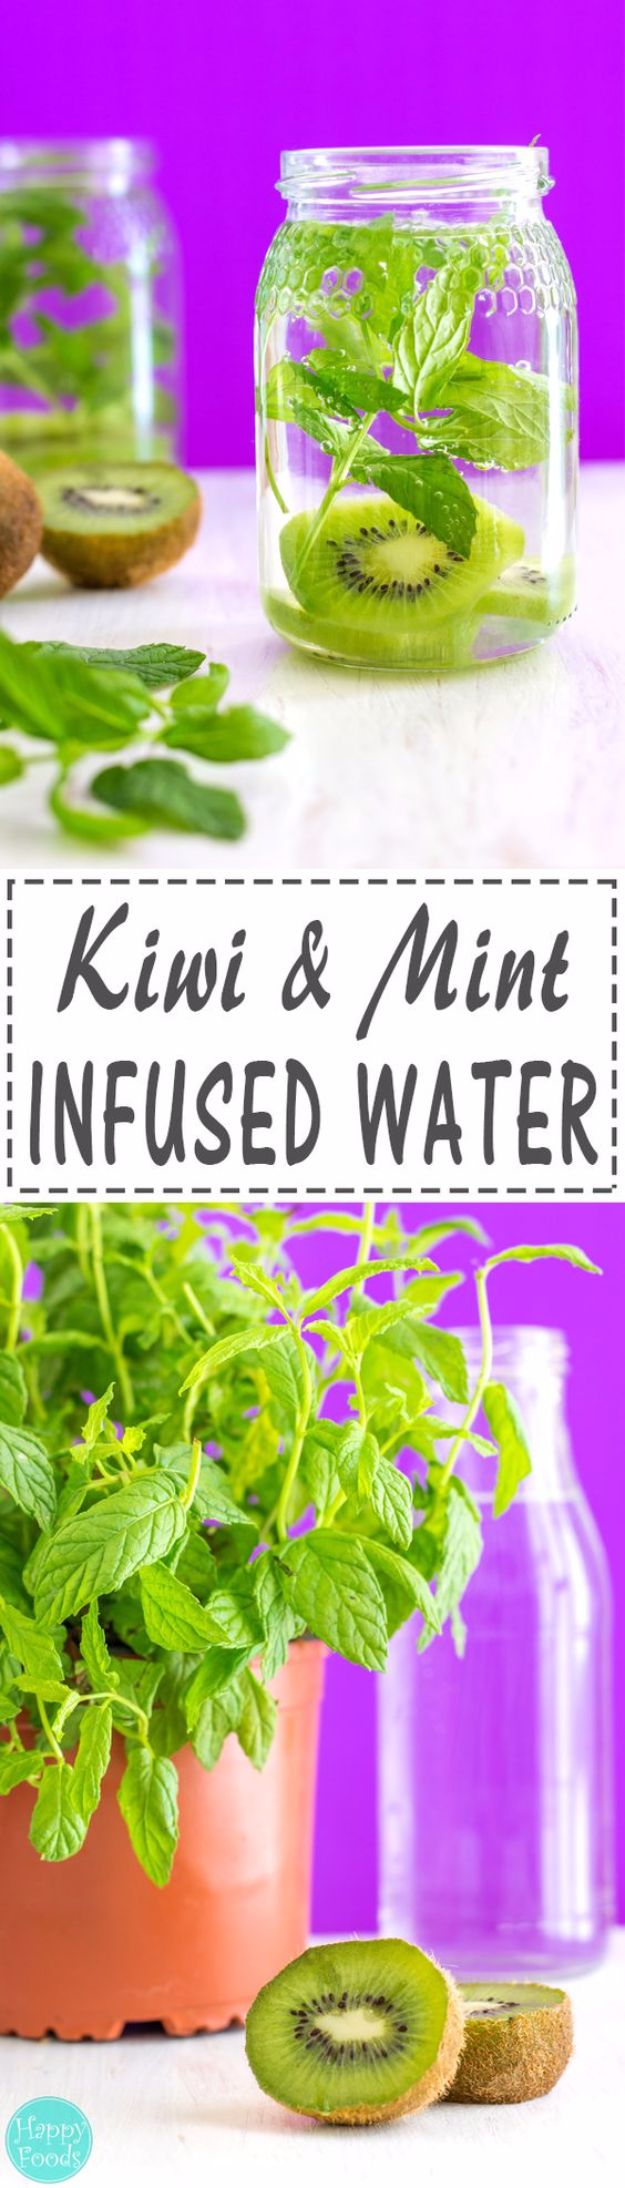 DIY Spa Day Ideas - Kiwi And Mint Infused Water - Easy Sugar Scrubs, Lotions and Bath Ideas for The Best Pampering You Can Do At Home - Lavender Projects, Relaxing Baths and Bath Bombs, Tub Soaks and Facials - Step by Step Tutorials for Luxury Bath Products http://diyjoy.com/diy-spa-day-ideas